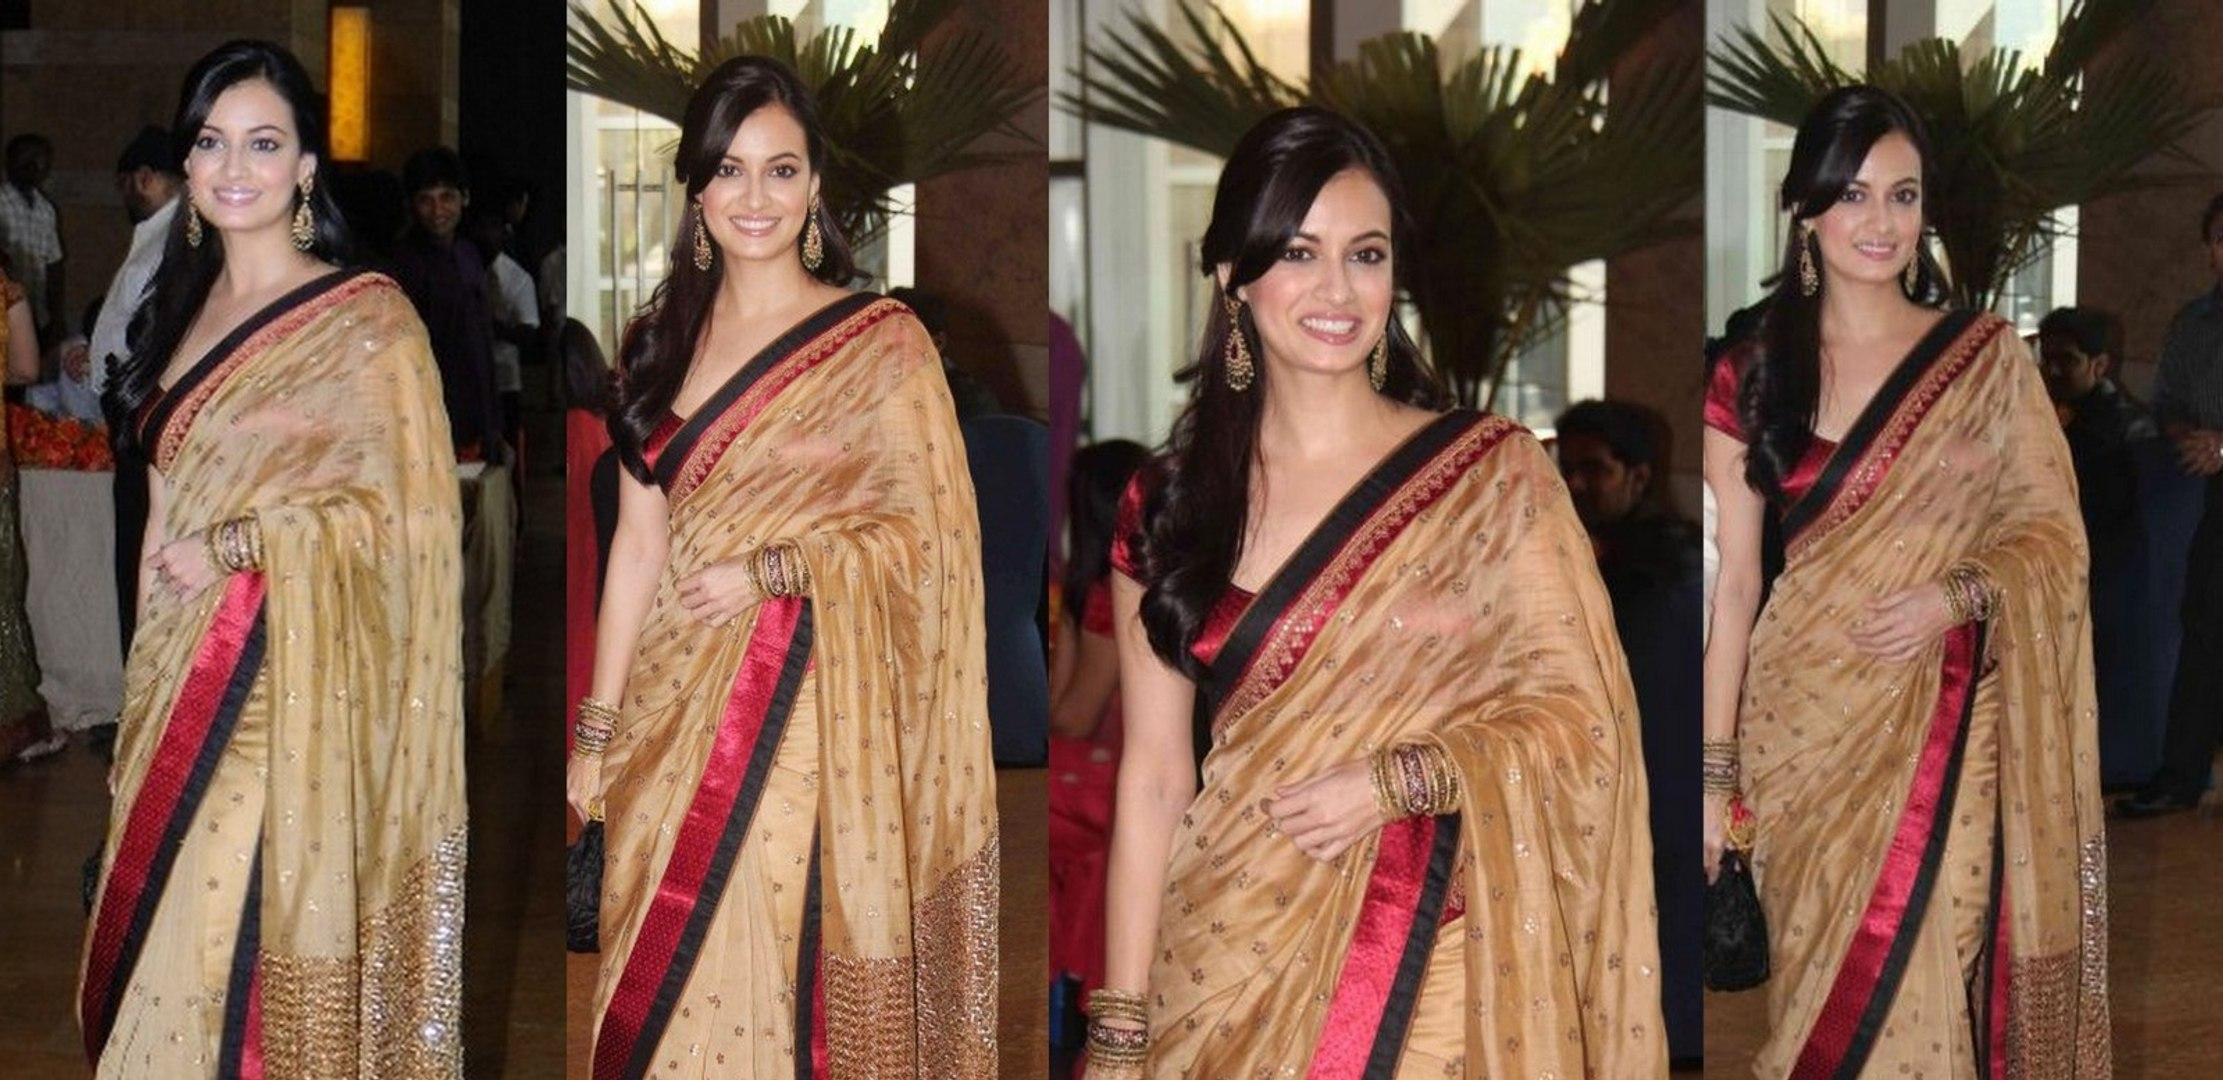 Bollywood Hot Girl actress DIA Mirza In Saree | Dia Mirza hot saree stills Dia Mirza hot in saree